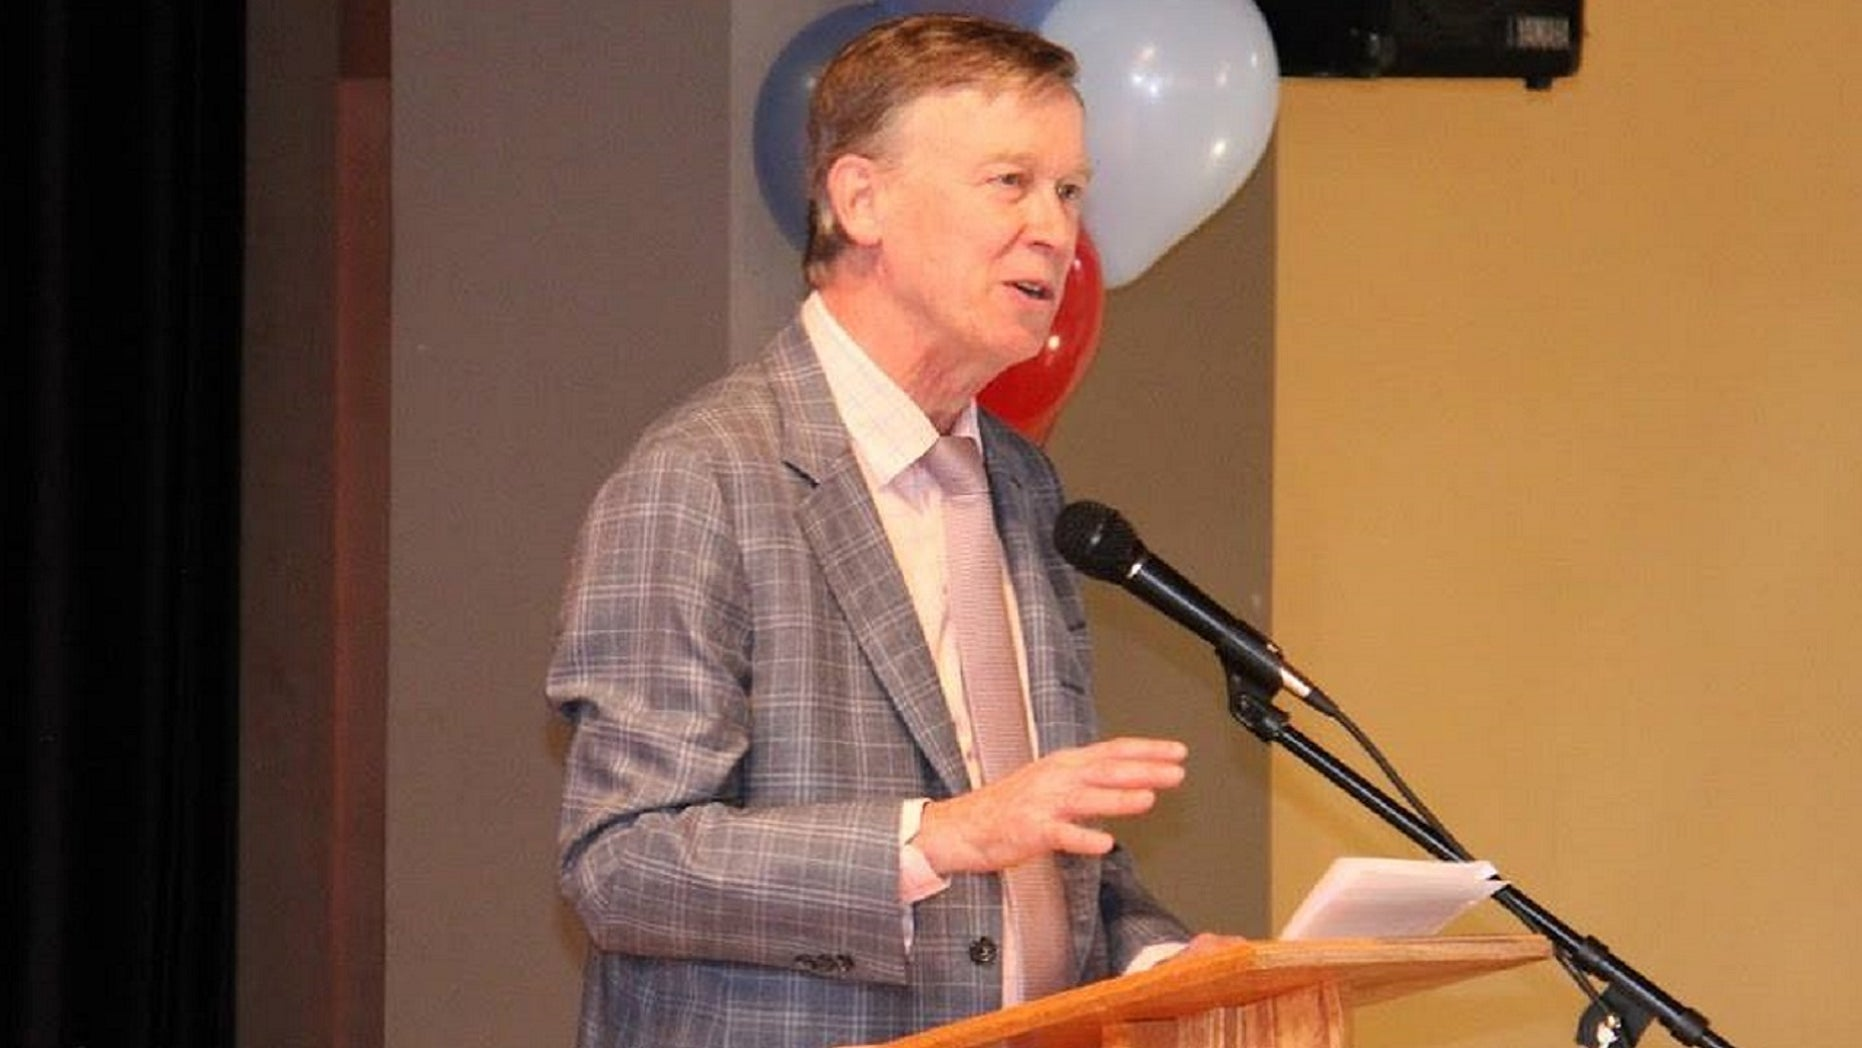 Colorado Gov. John Hickenlooper granted 23 people clemency, reports said Friday.